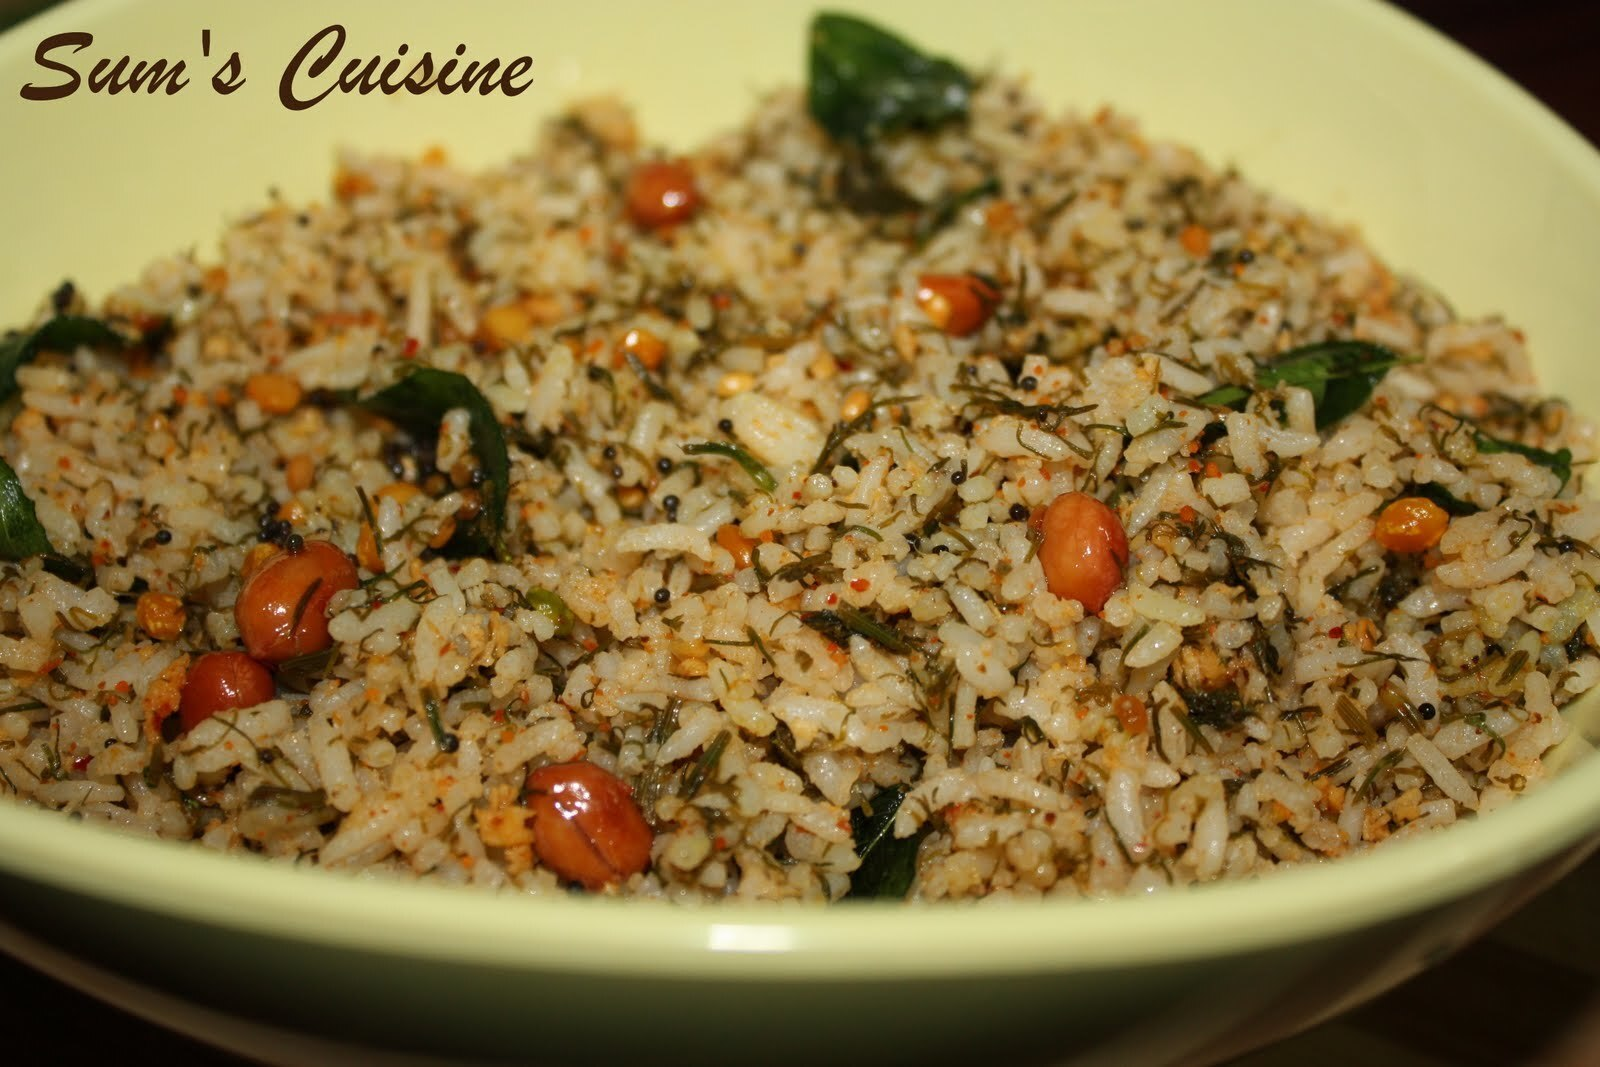 Dill Rice - A nutritious rice speciality